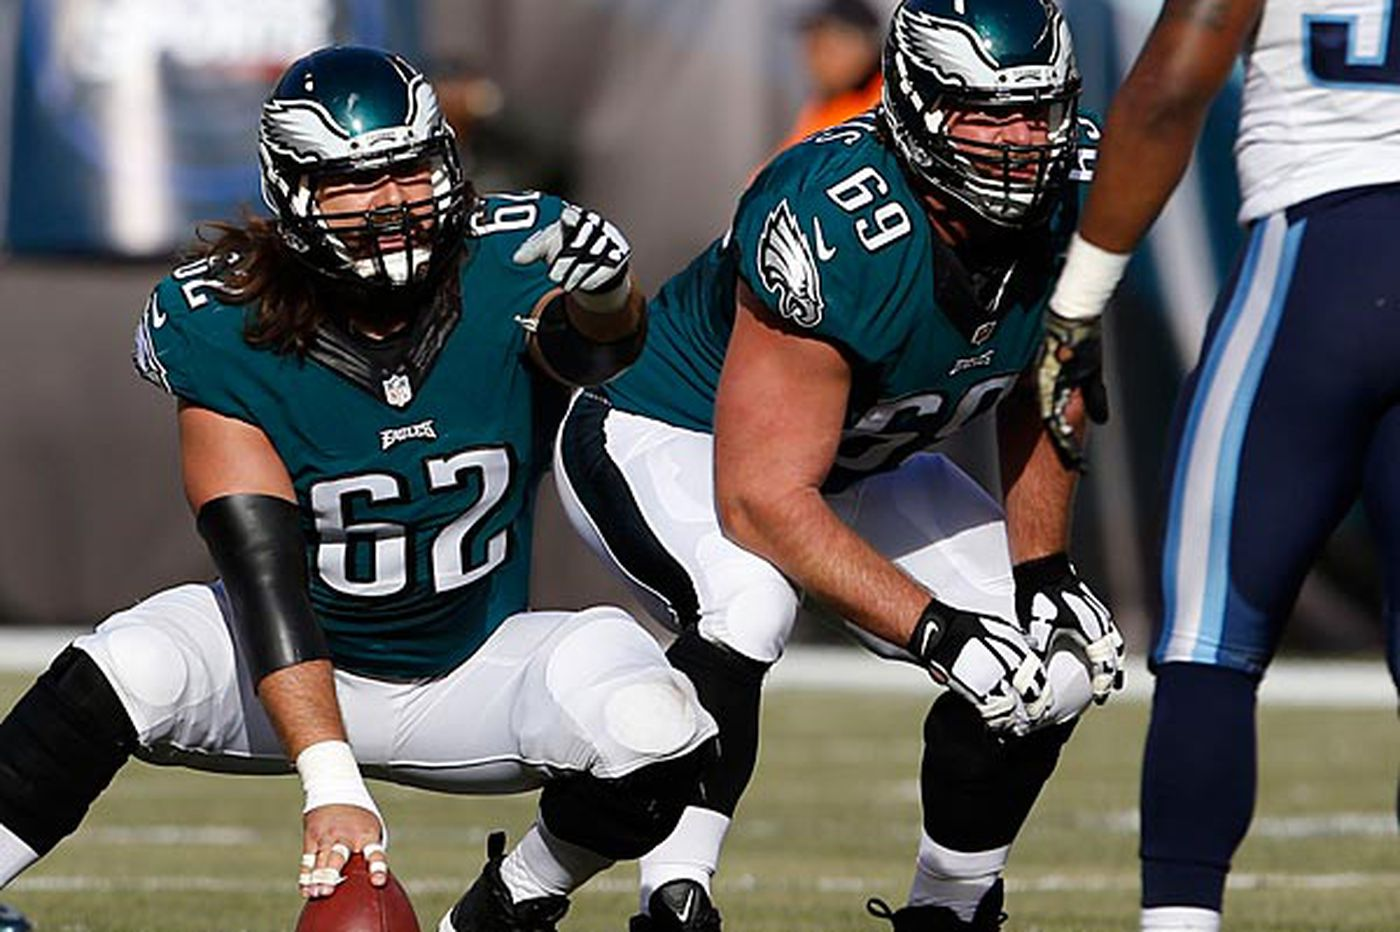 Eagles' offensive line losing ground